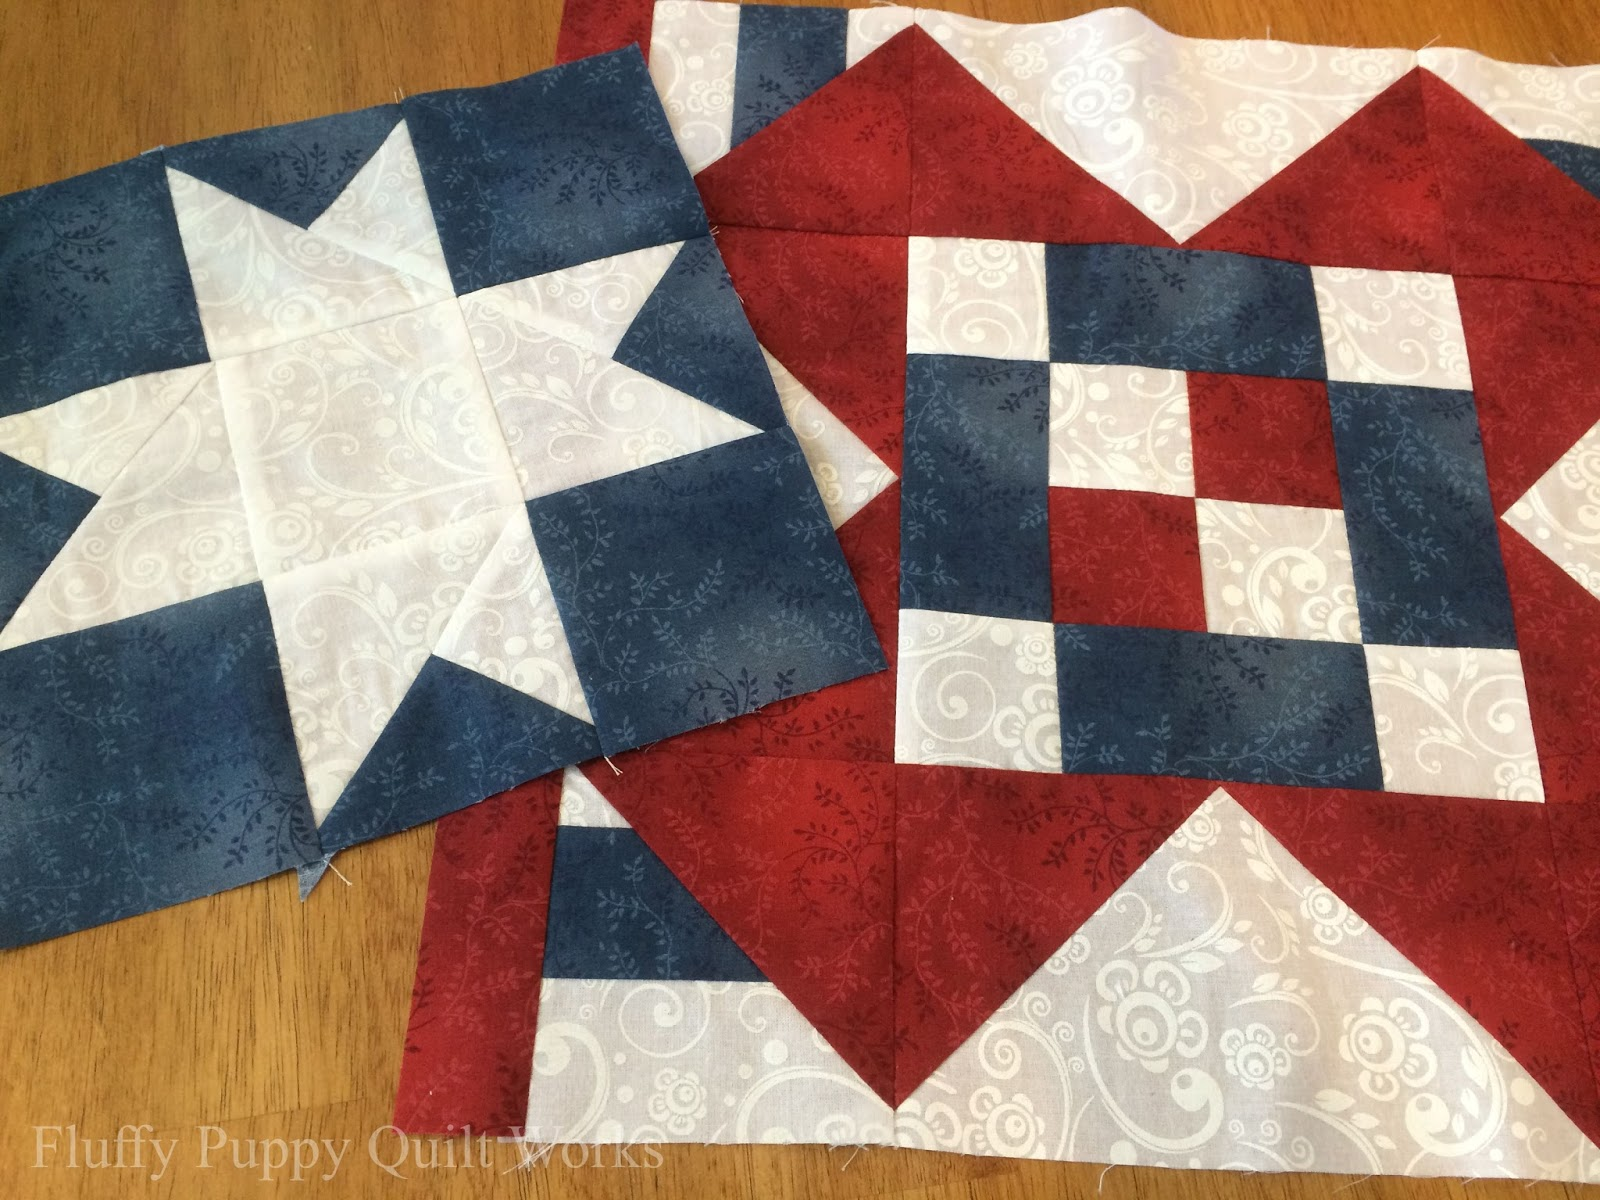 Fluffy Puppy Quilt Works: Cutting Fabric for Your Quilt: Tips and ... : cutting quilt squares - Adamdwight.com